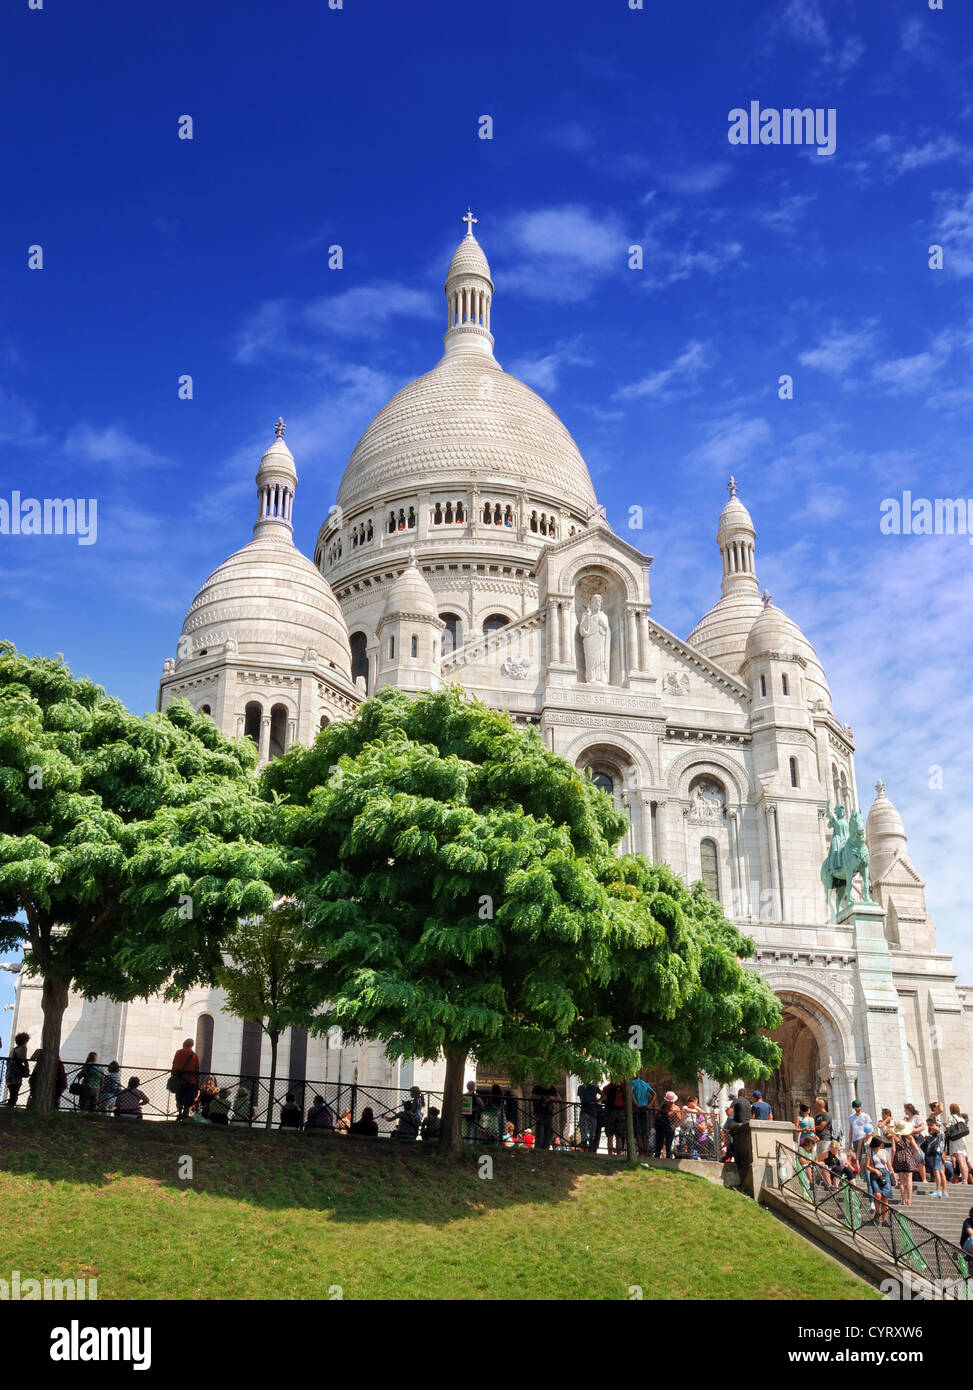 The basilica Sacre Coeur ('Basilica of the Sacred Heart of Jesus') on Montmartre in Paris, France. - Stock Image